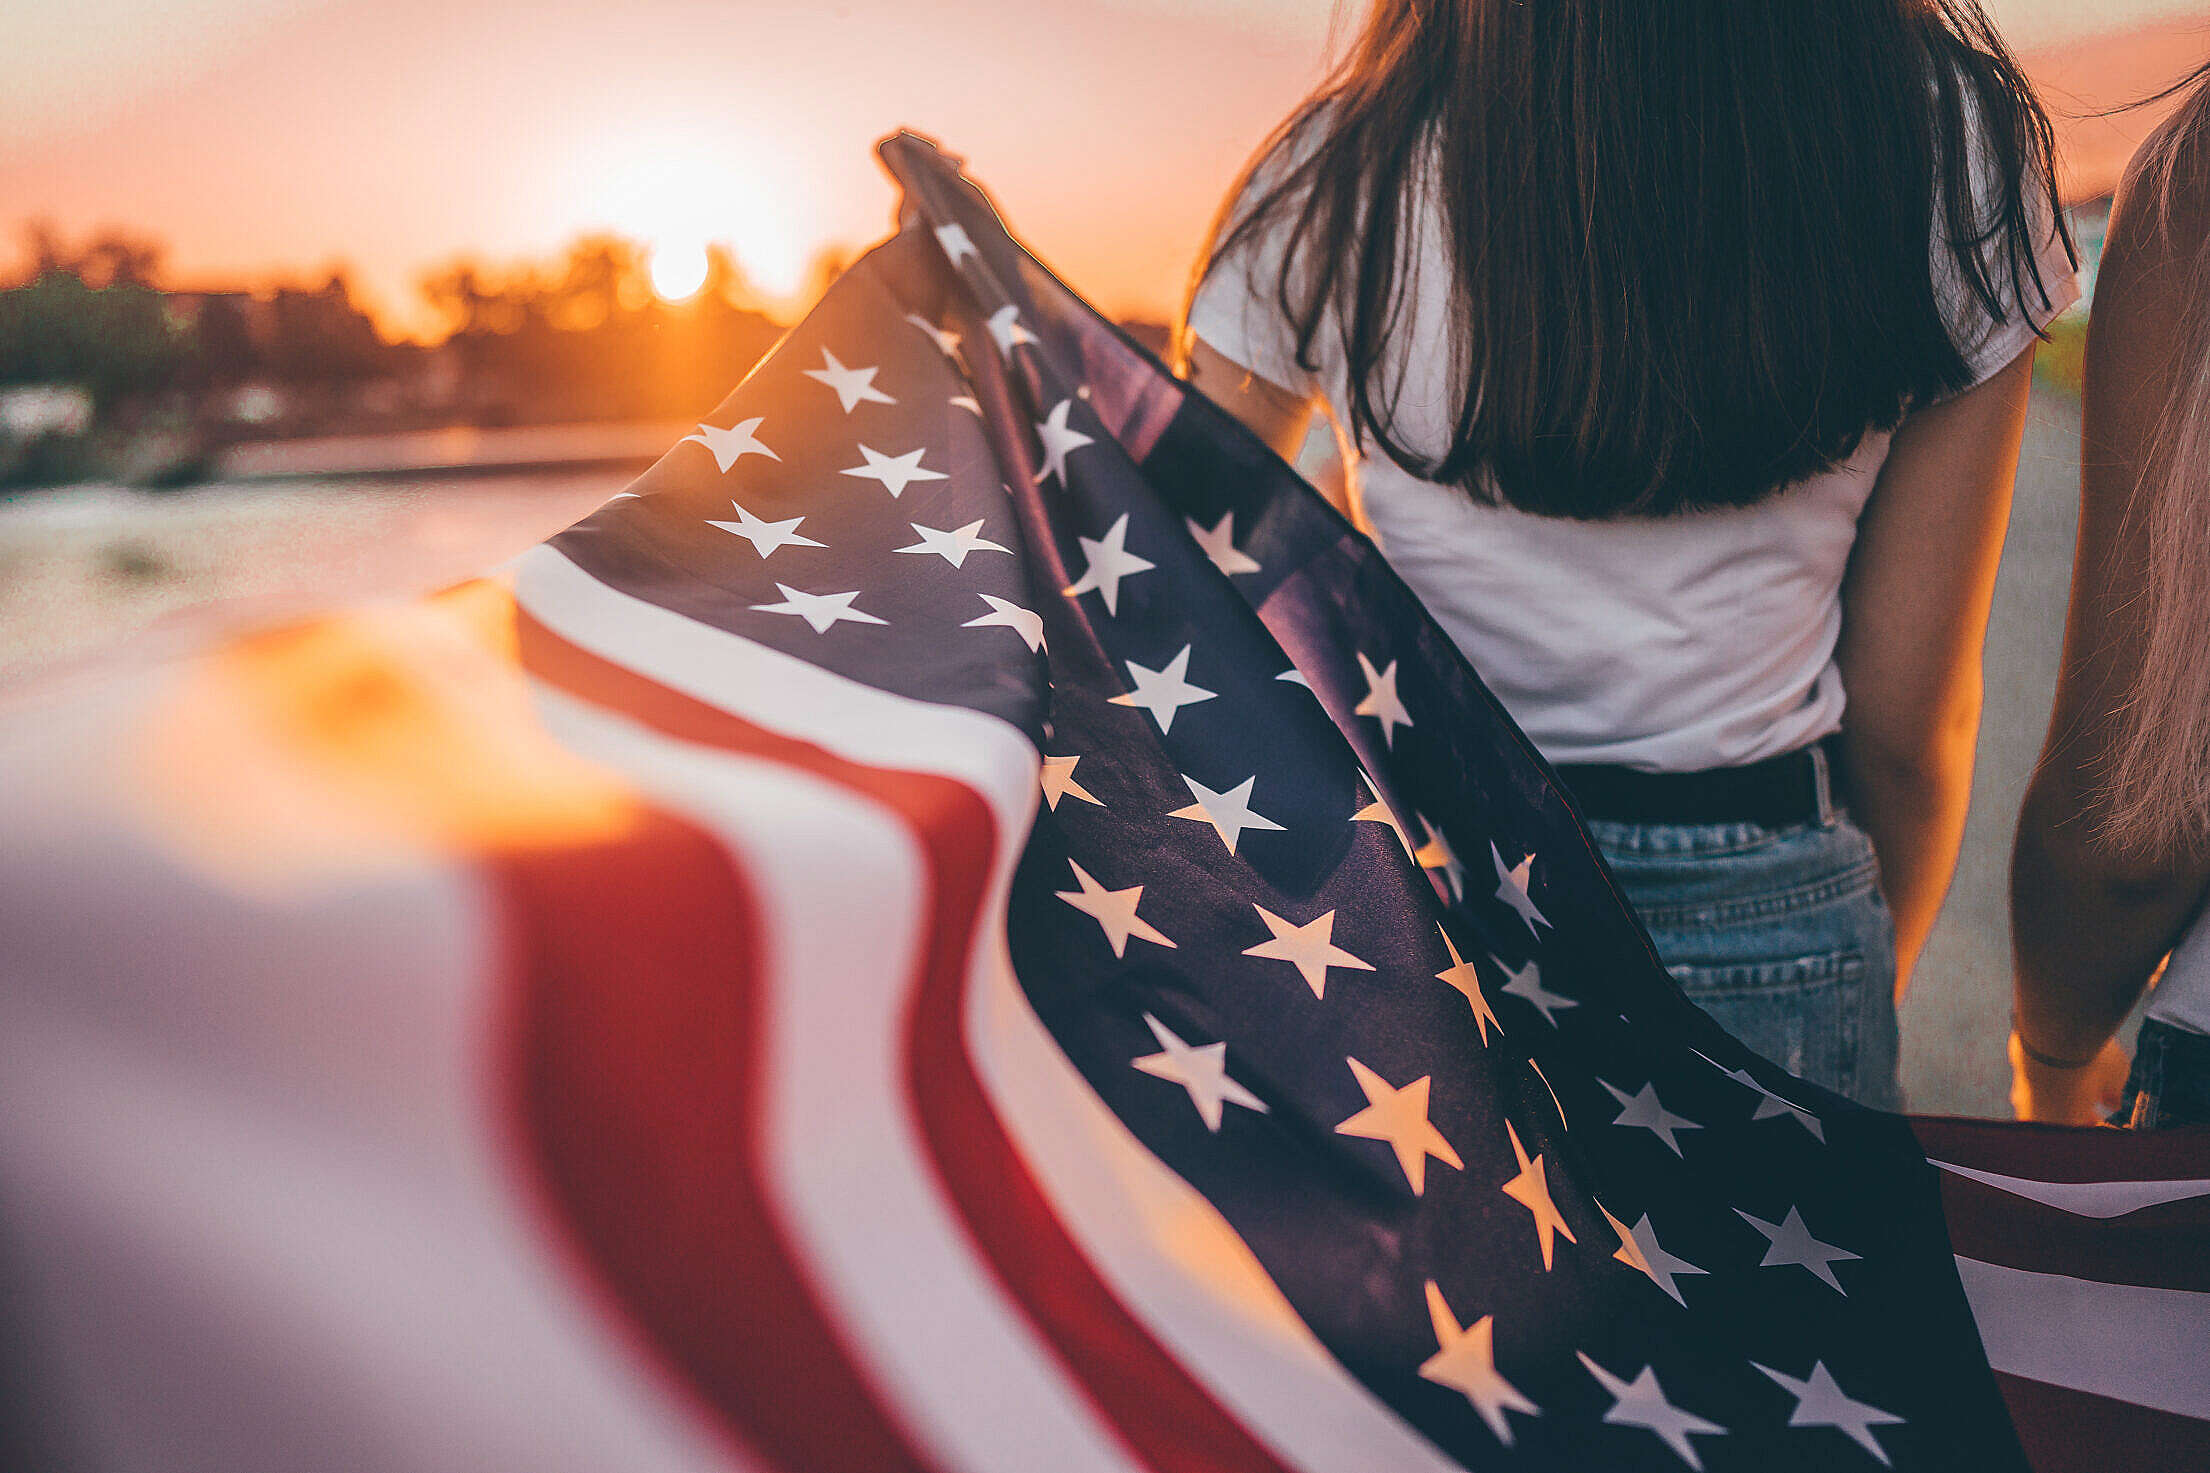 Girls Holding an American Flag Free Stock Photo